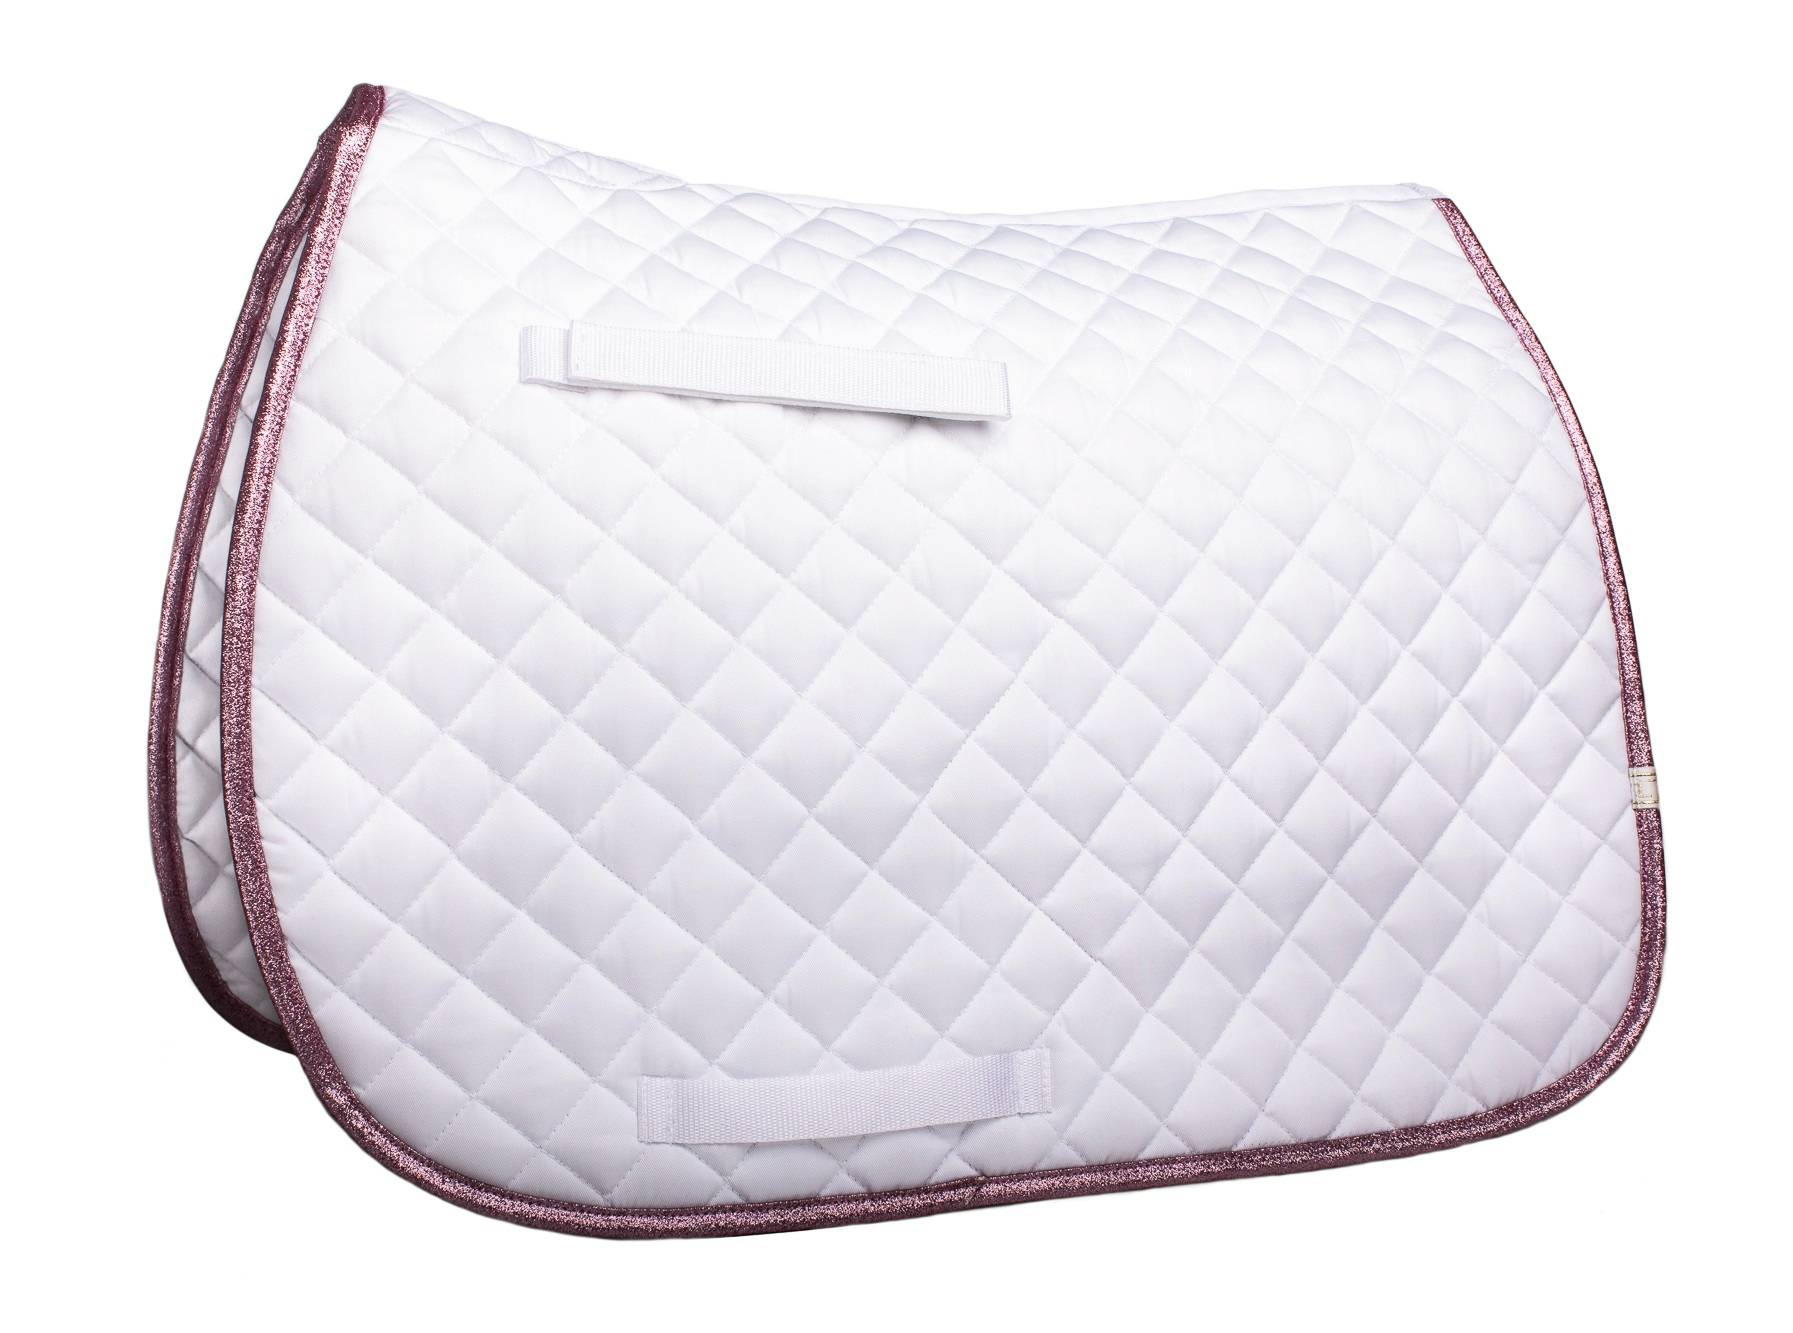 Lettia Sparkly Trim Saddle Pad - All Purpose